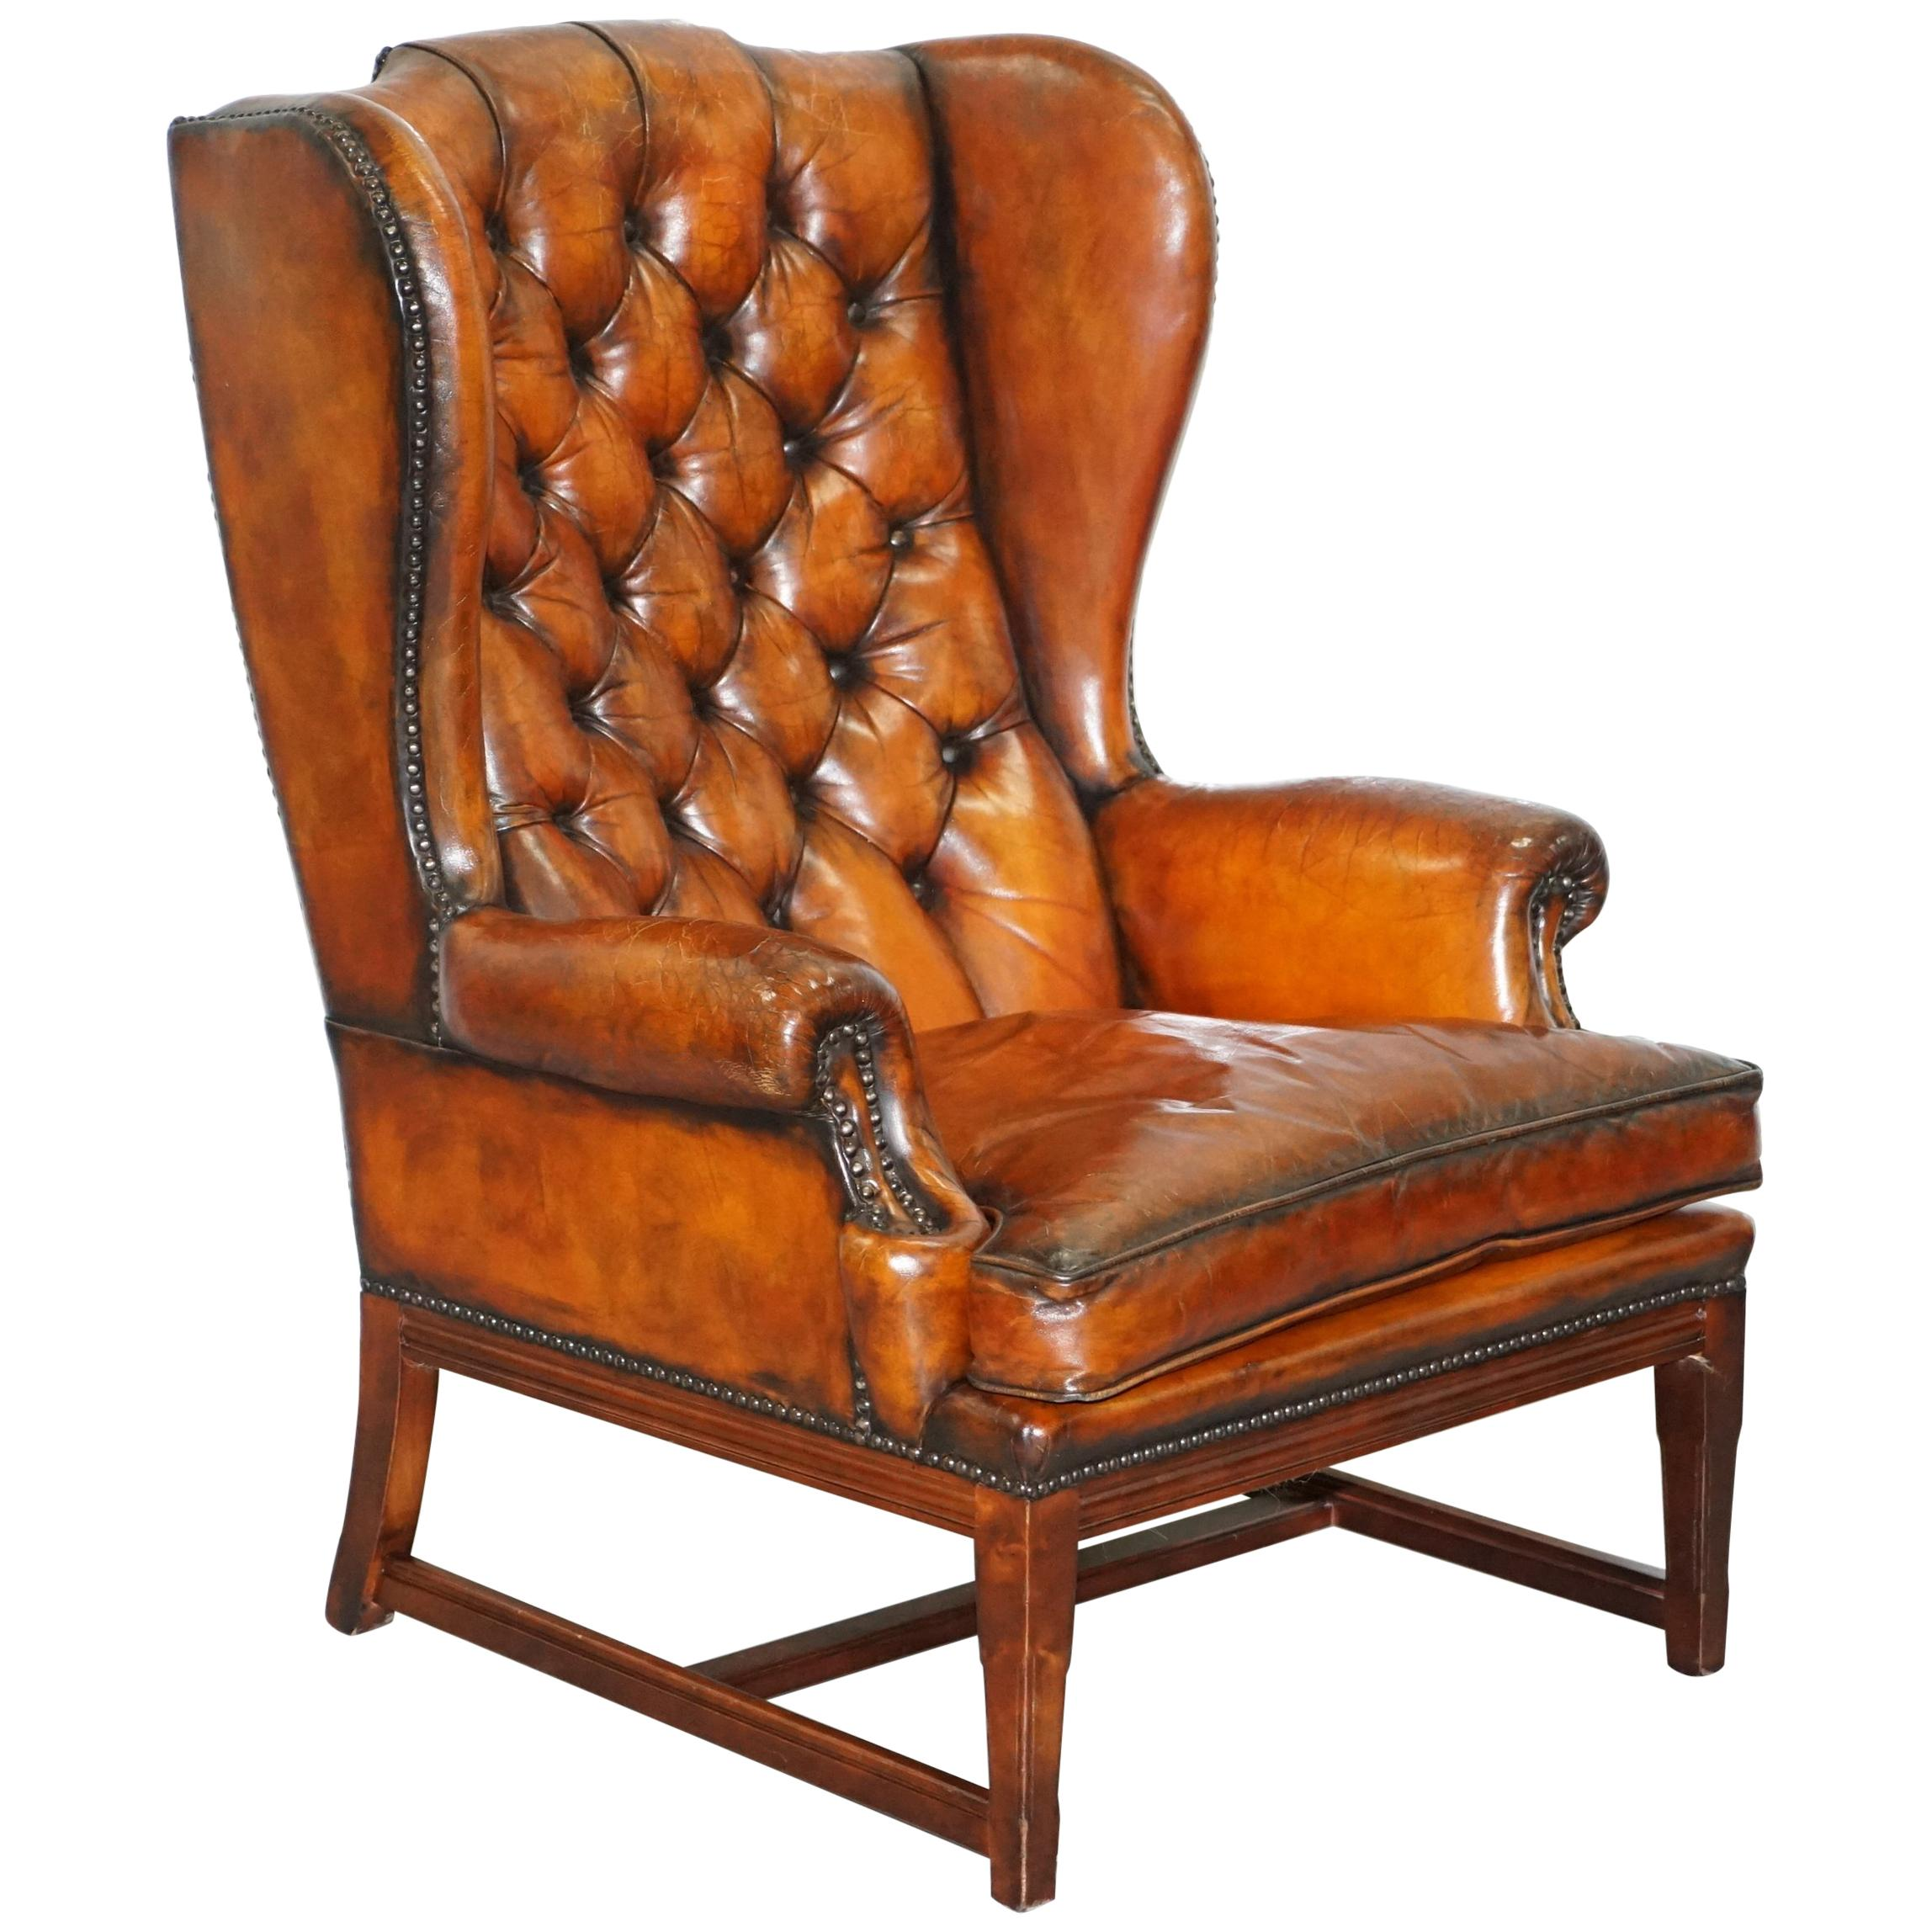 1 Finest Quality Antique Chesterfield Style Leather Handmade Wingback Armchair Rich And Magnificent Armchairs